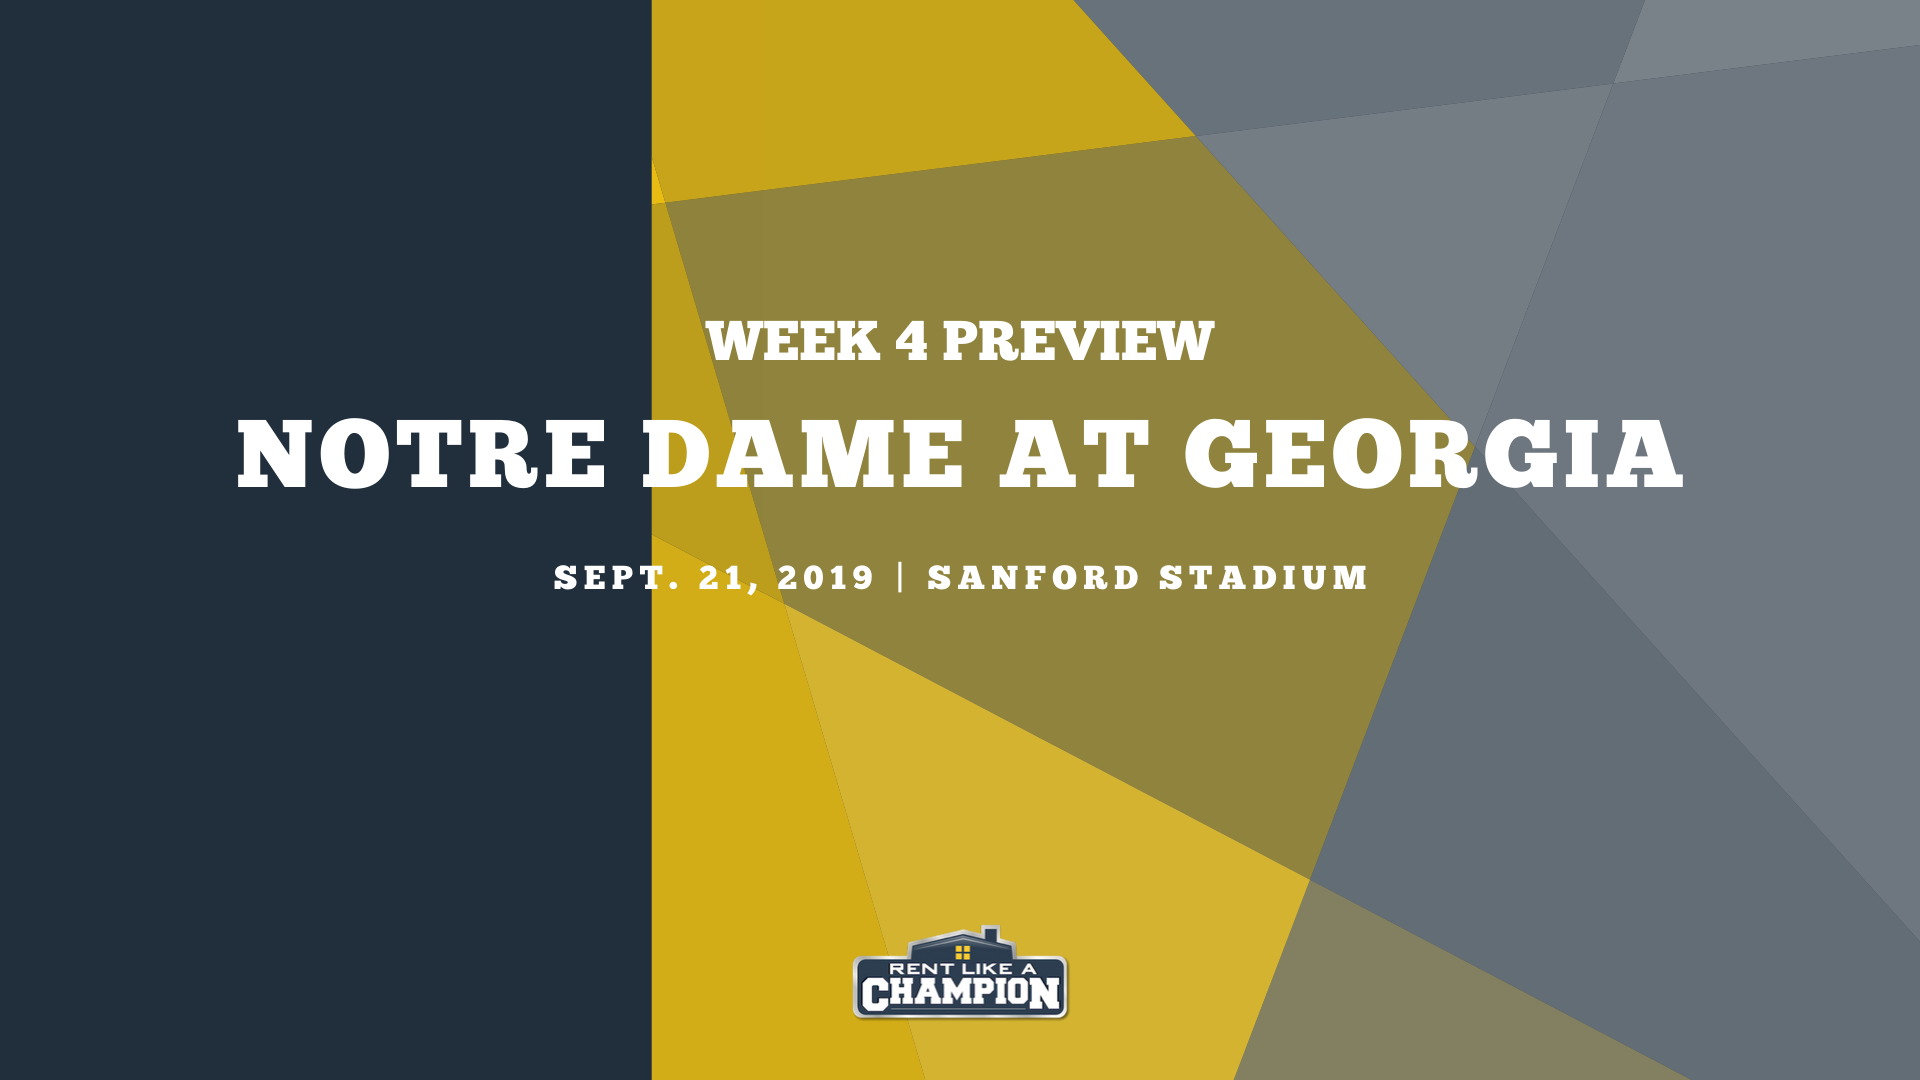 Notre Dame at Georgia: Preview, keys to the game, and predictions